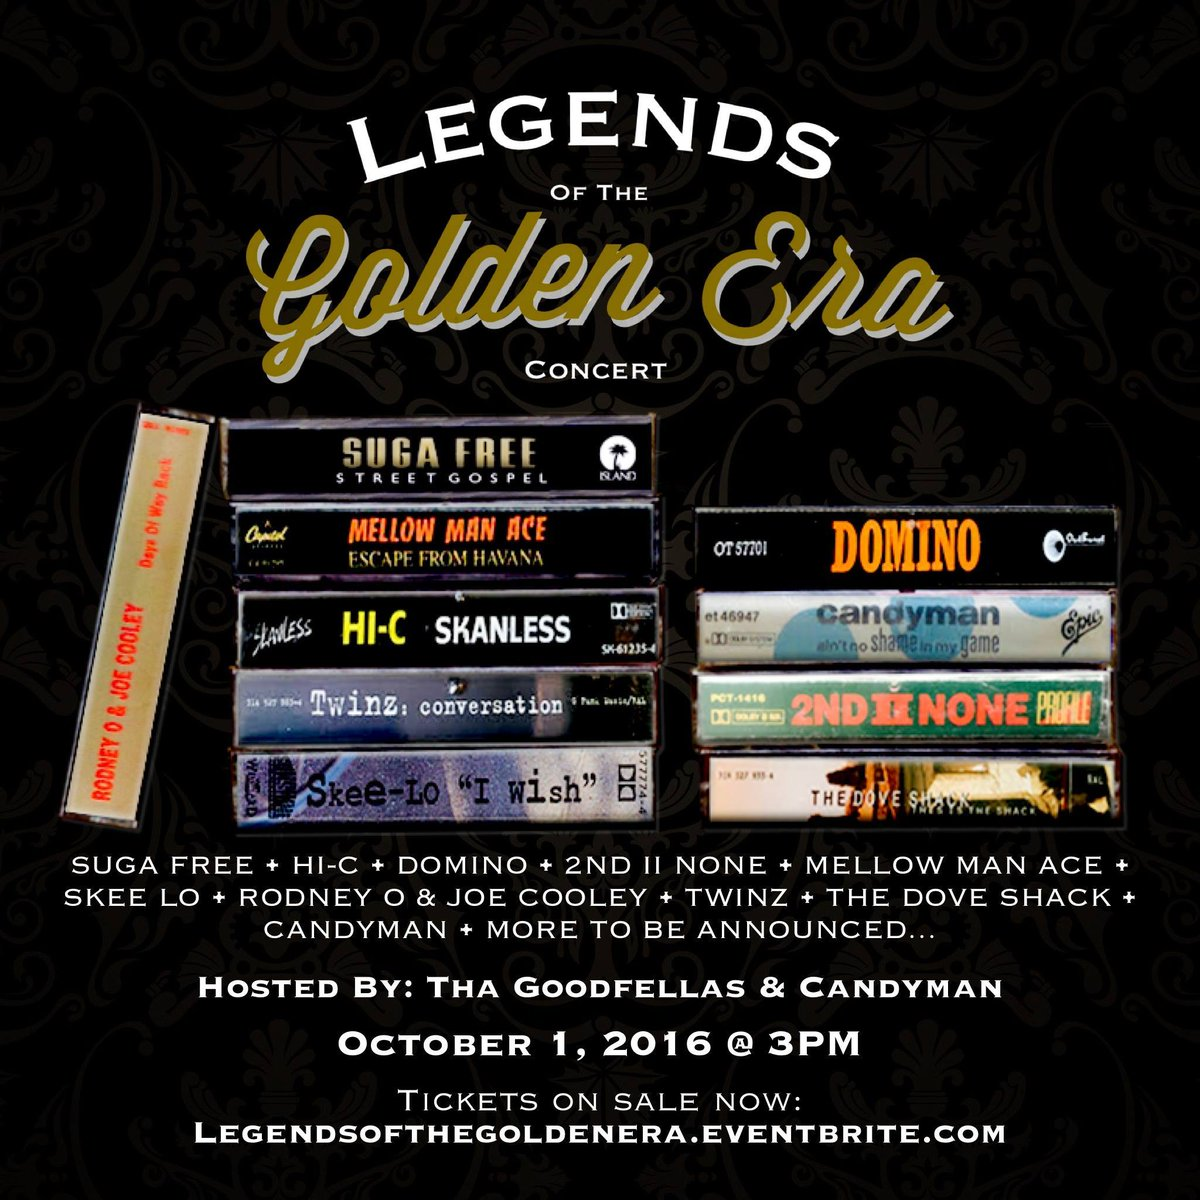 #LEGENDSOfTheGOLDENERA @SugaFreeWisdom @OGDomino @2NDIINONECPT @Mellow_Man_Ace @Skeelo_MusiK @RodneyOandJoeC & more https://t.co/U45T1tnRLD